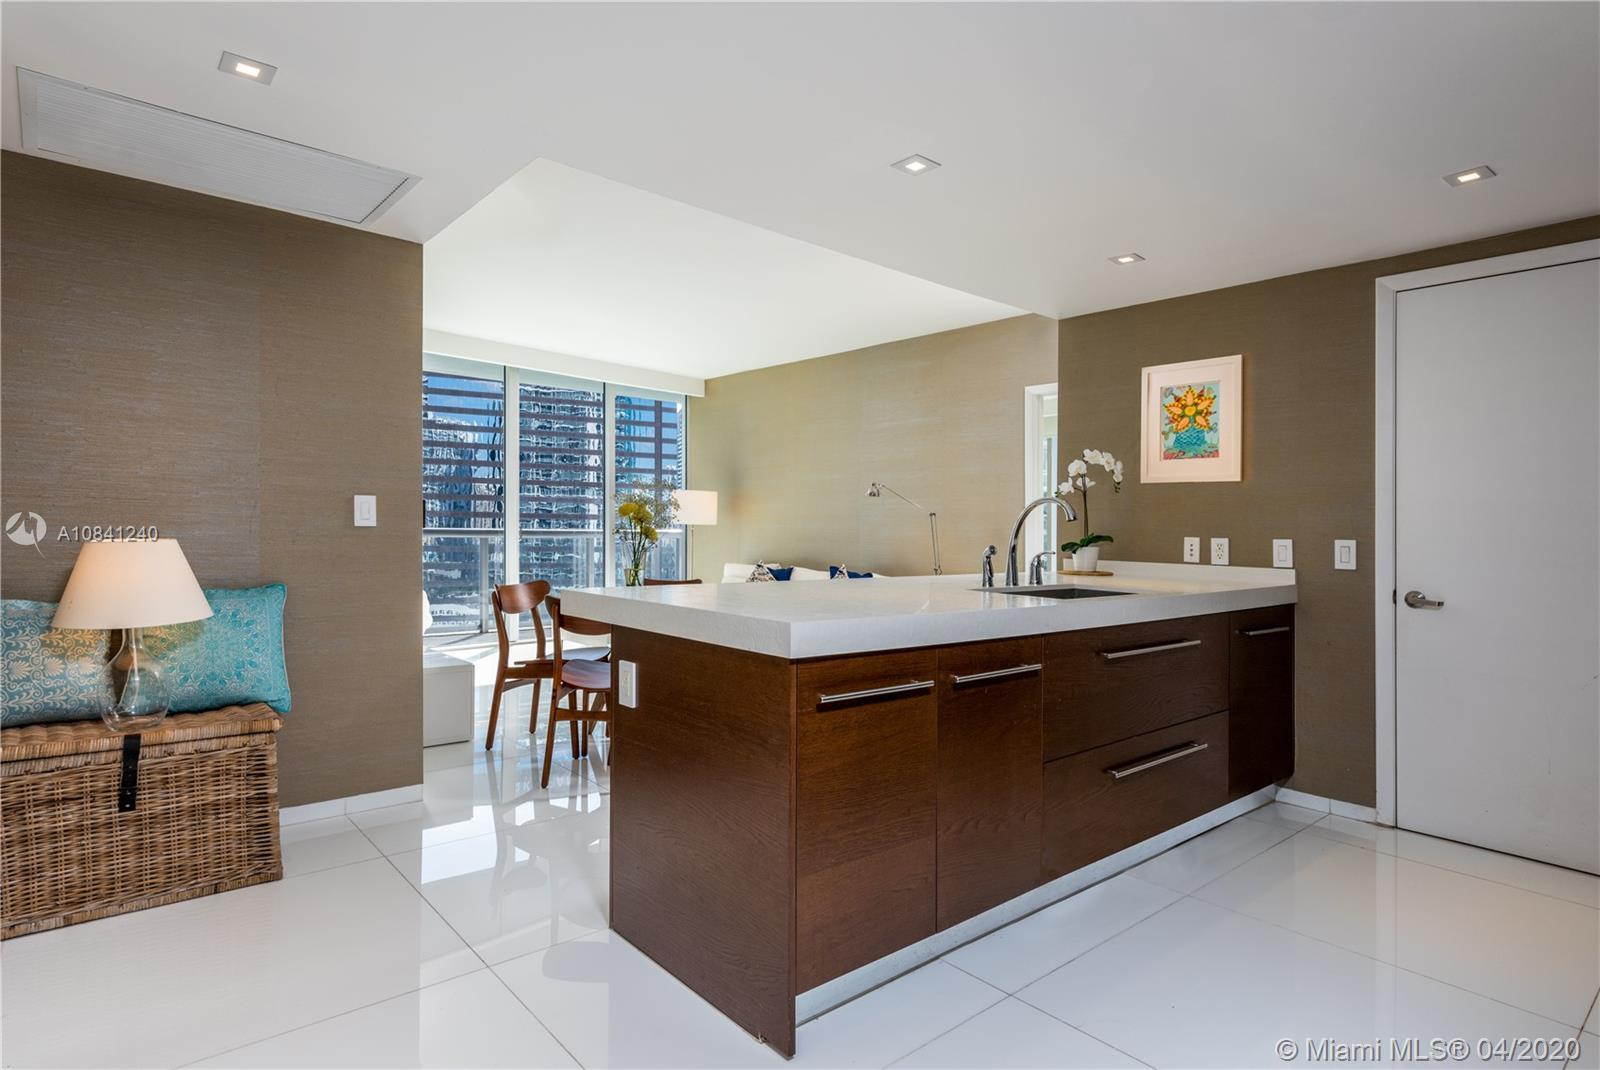 CORNER UNIT 2/2 LOCATED ON 24TH FLOOR, MULTIPLE VIEWS, OCEAN, CITY, RIVER. TOTALLY UPGRADED BY INTER